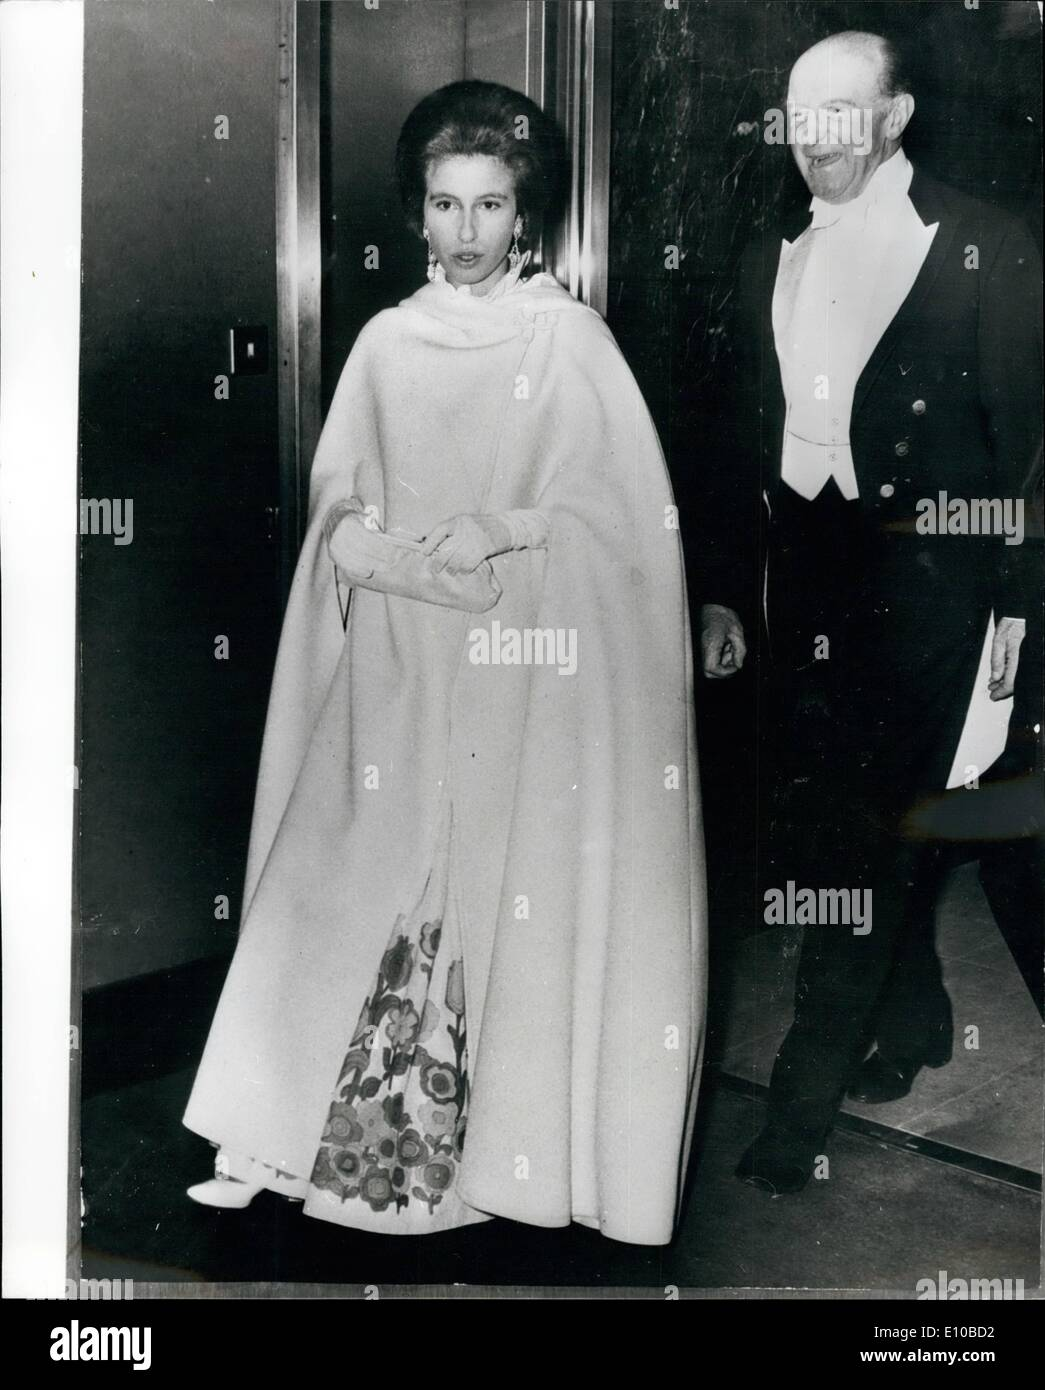 Mar. 03, 1972 - PRINCESS ANNE AT BAIL After being welcomed by The Duke of Beaufort, Princess Anne, wearing a somewhat dramatic Oloak over a floral gown, enters Grosvenor House, London, last night, to attend the ''Horse and Hounds'' dinner and ball. The Princess recently returned home fro. the Far lectern tour where abe had been with the Queen and Prince Philip, who are still abroad, to enable her to prepare for next month's Badminton Horse Trial., at the been of the Duke. of Beaufort, The Trials take on more than usual importence - Stock Image